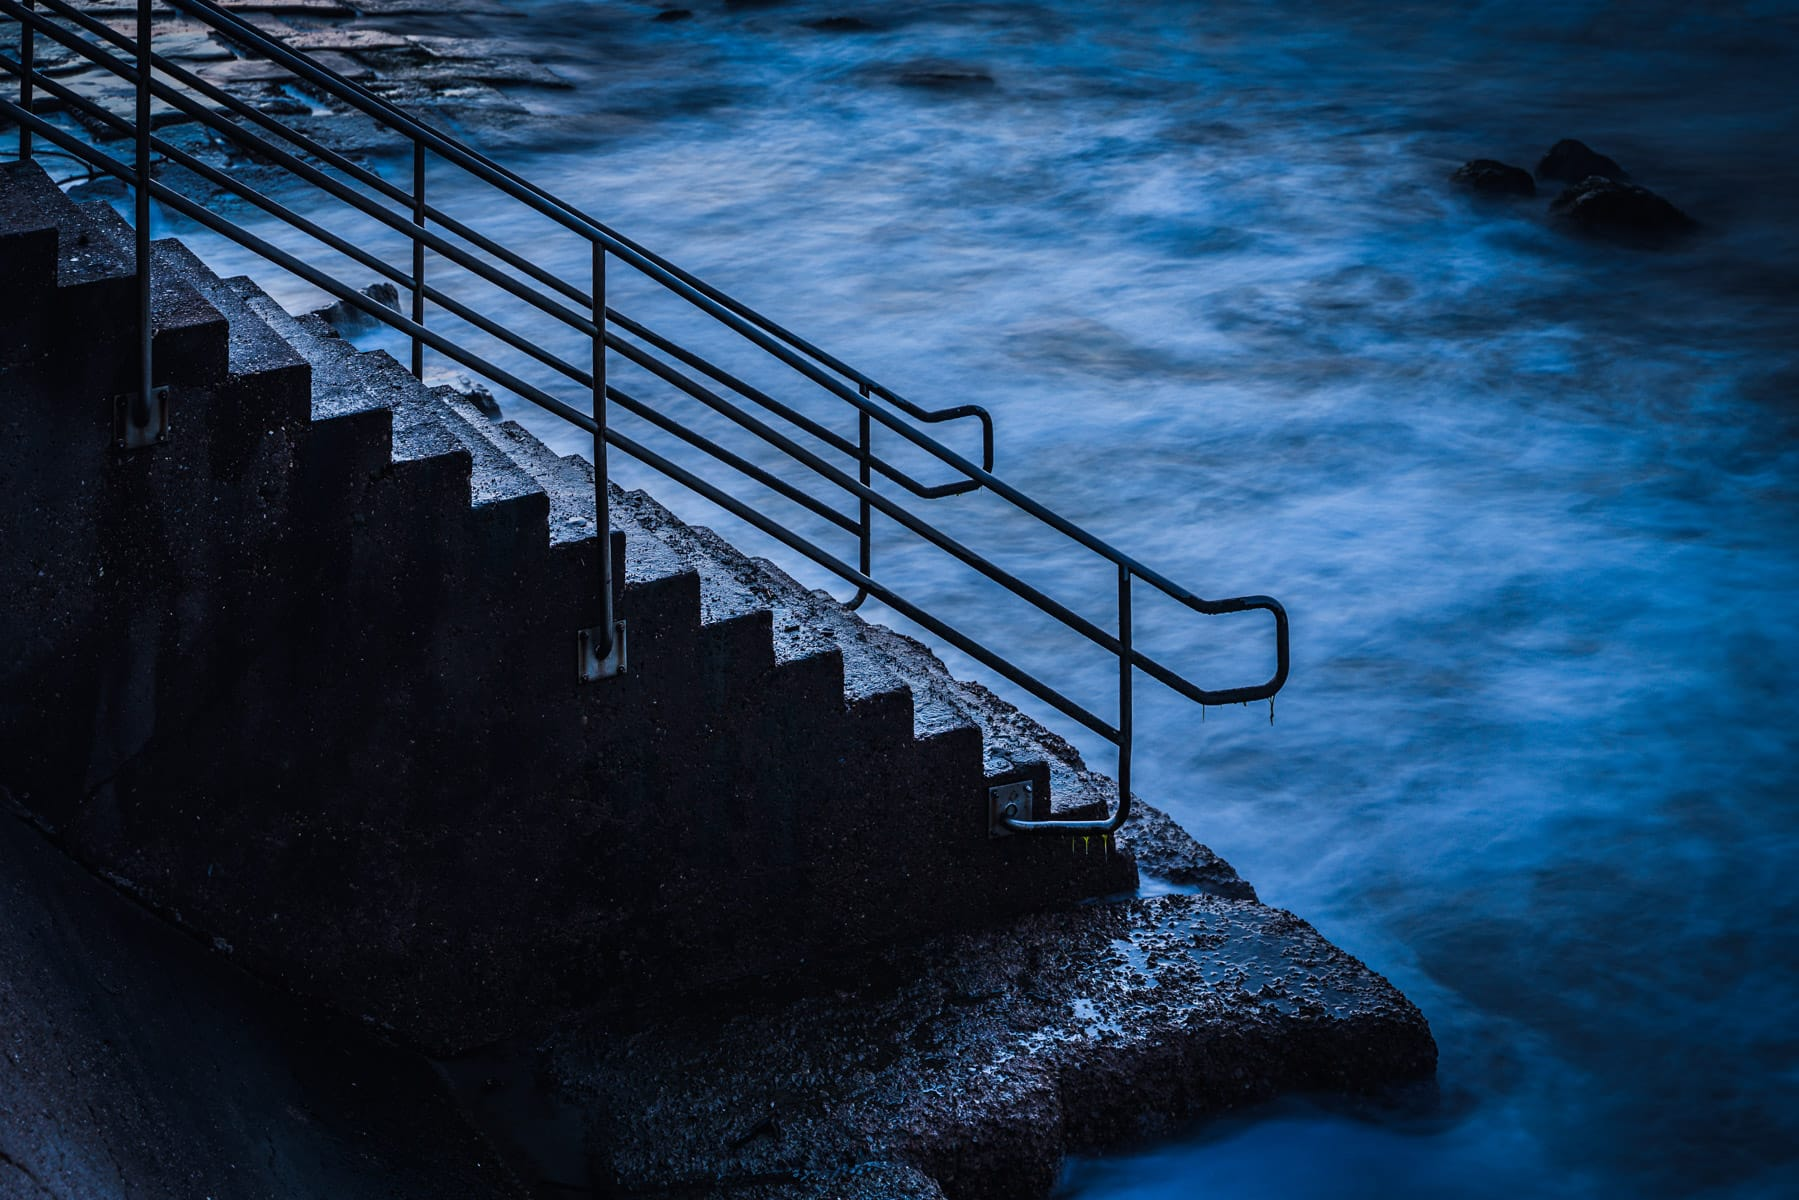 Stairs on the Galveston, Texas, Seawall lead to the swirling waters of the Gulf of Mexico.